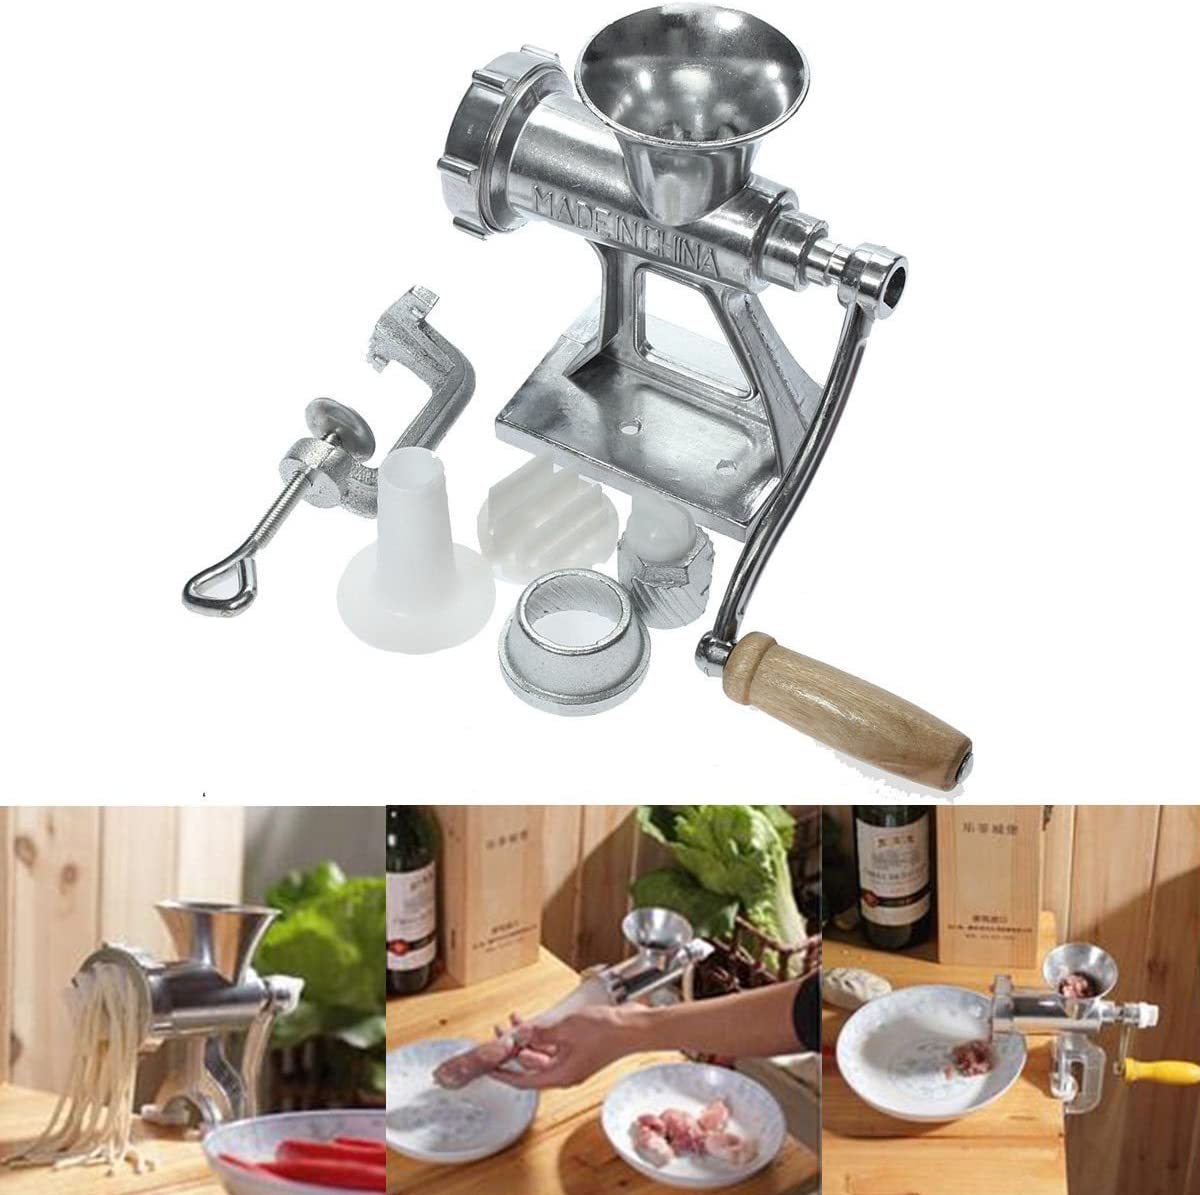 Heavy Duty Manual Meat Grinder Hand Operated Mincer Food Kitchen Aluminium